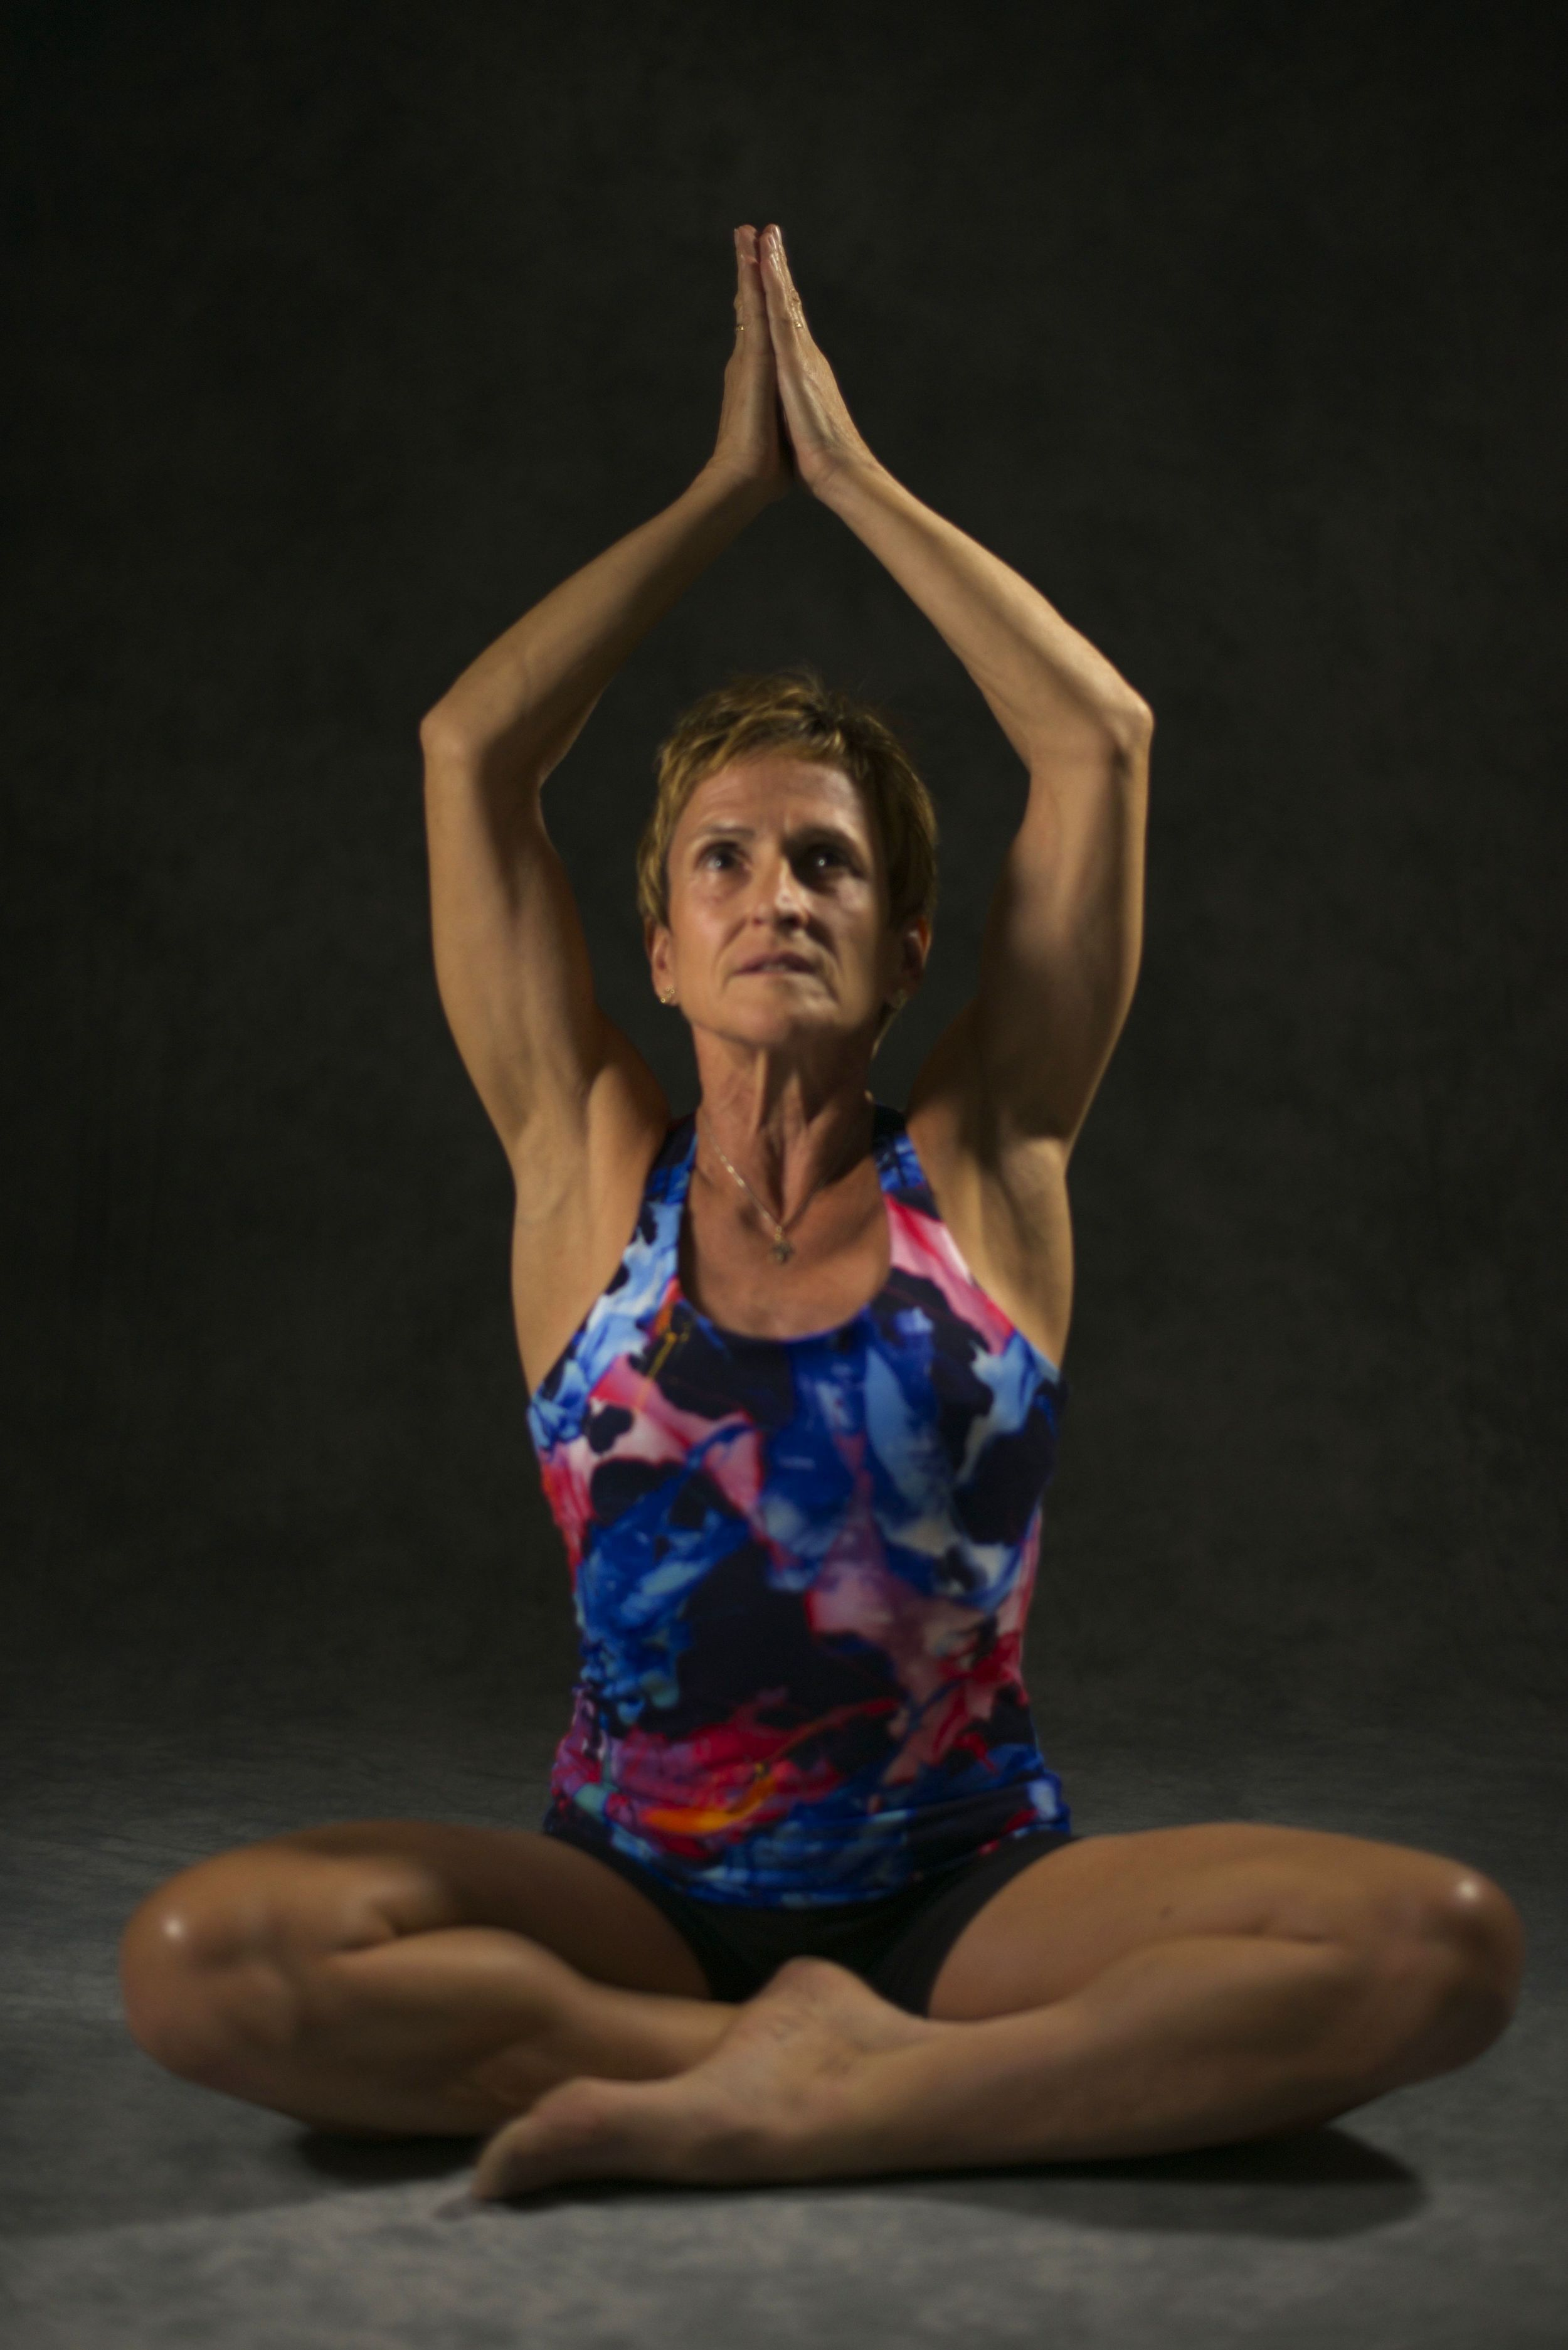 Val in seated posture with prayer overhead